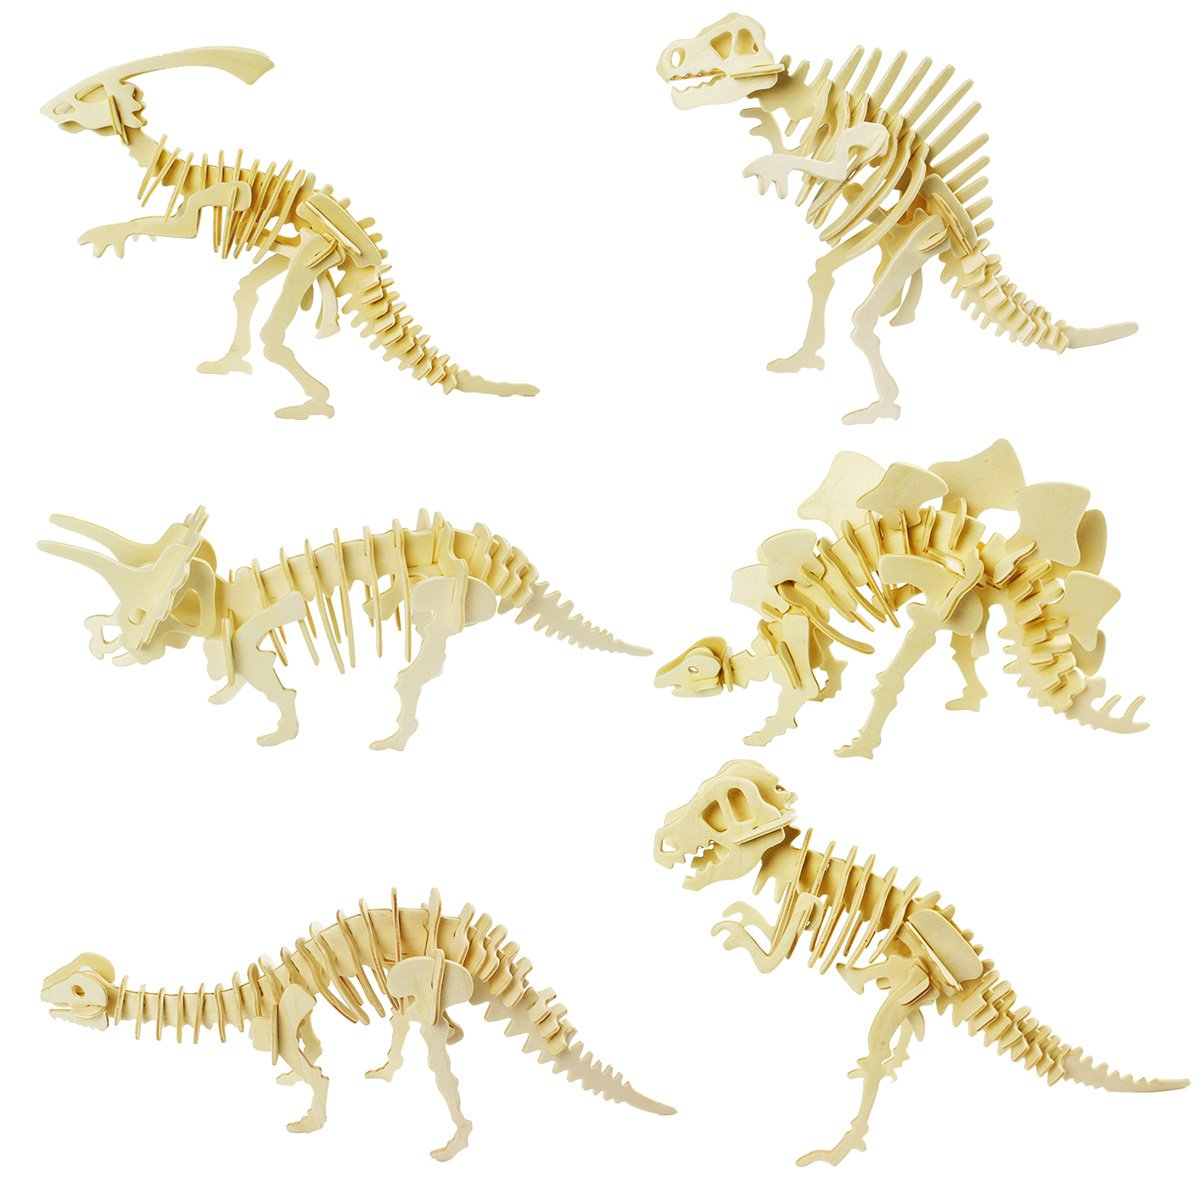 Calary 3D Wooden Puzzle Simulation Animal Dinosaur Assembly DIY Model Toy for Kids and Adults,Set of 6